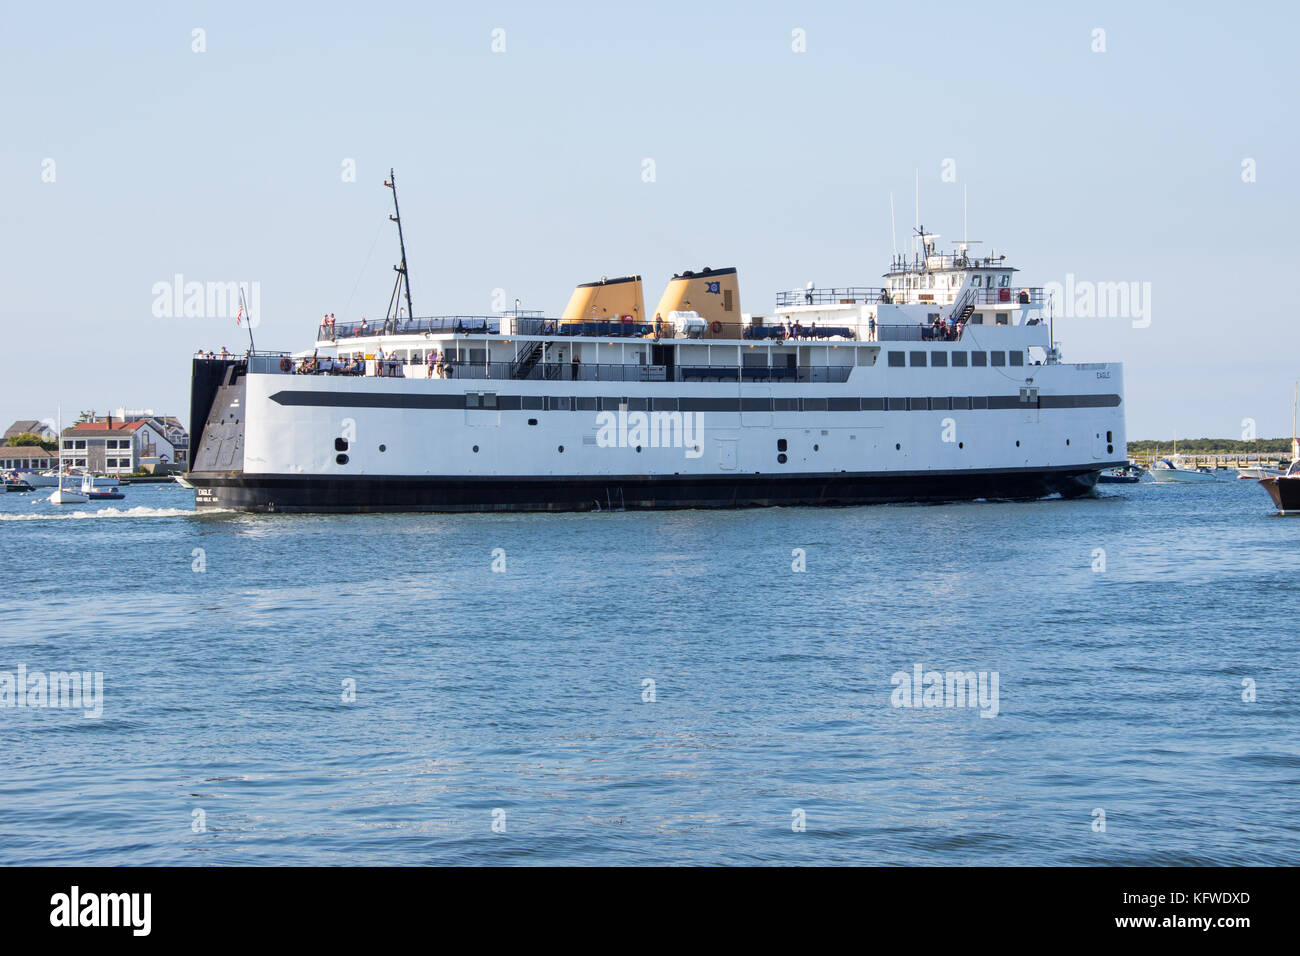 nantucket ferry stock photos & nantucket ferry stock images - alamy